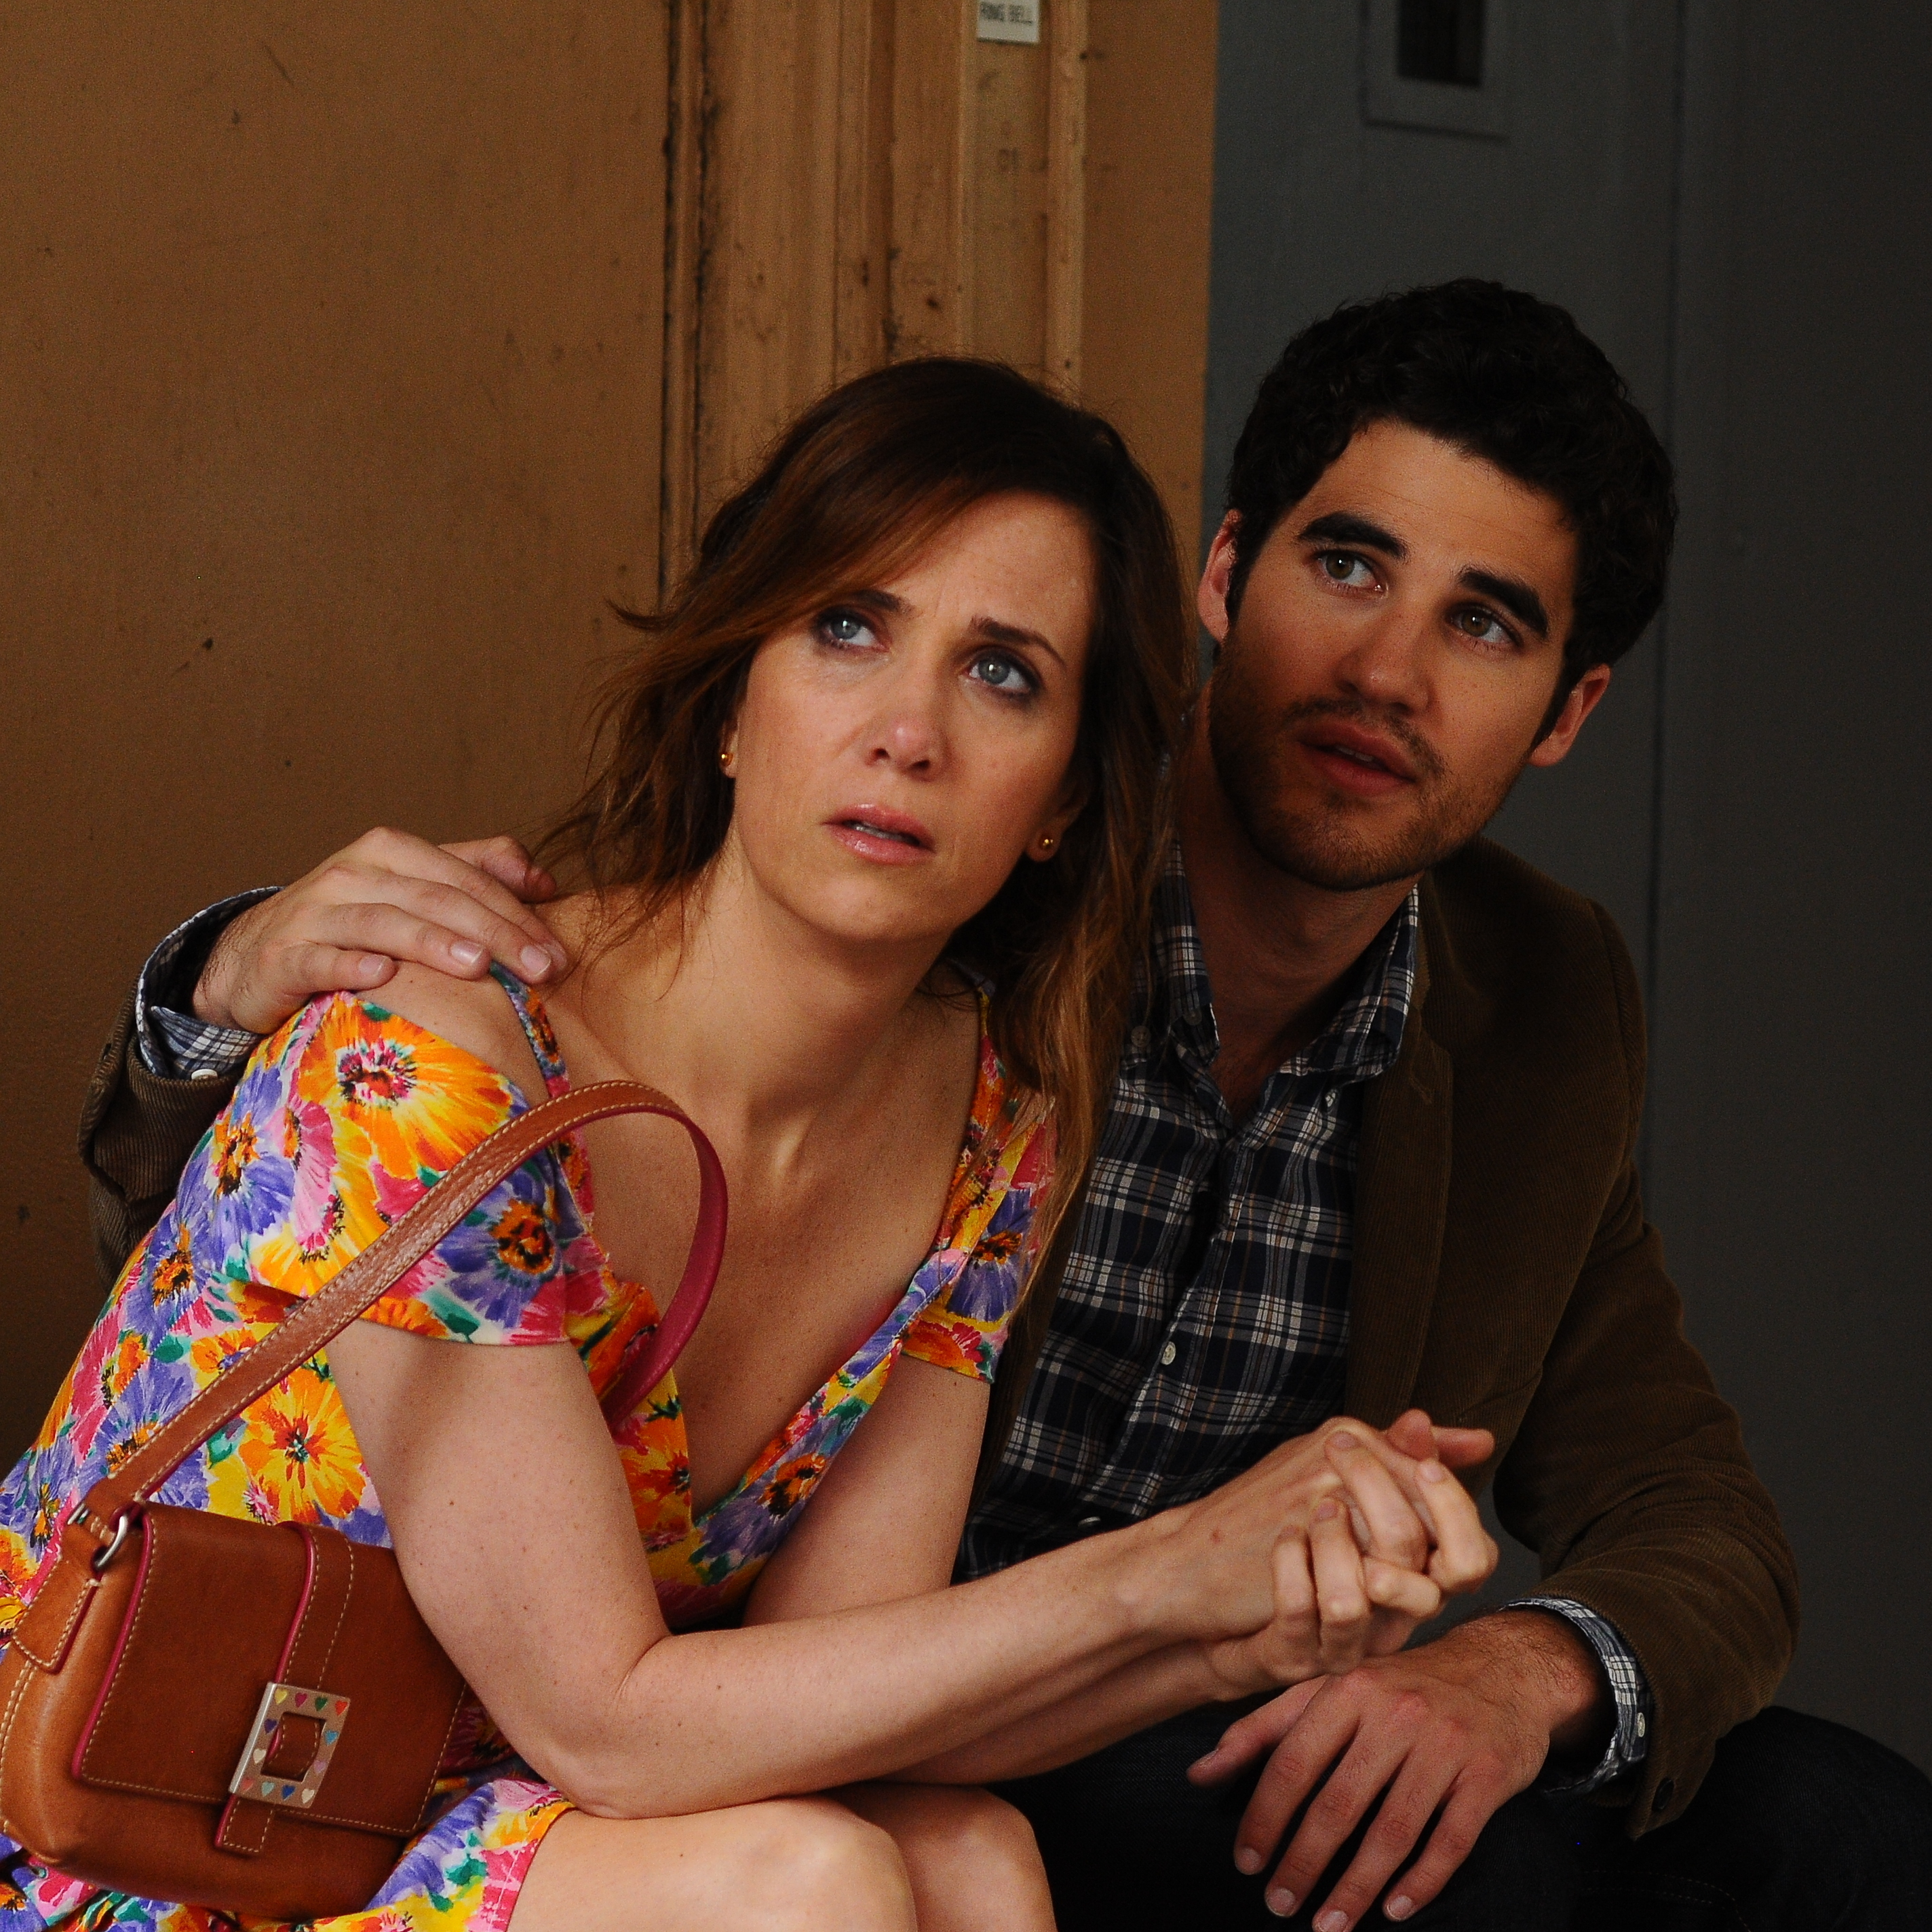 Lee (Darren Criss) is an aspiring musician who's rented a room in Imogene's childhood home -- which makes for some awkwardly overcrowded moments.